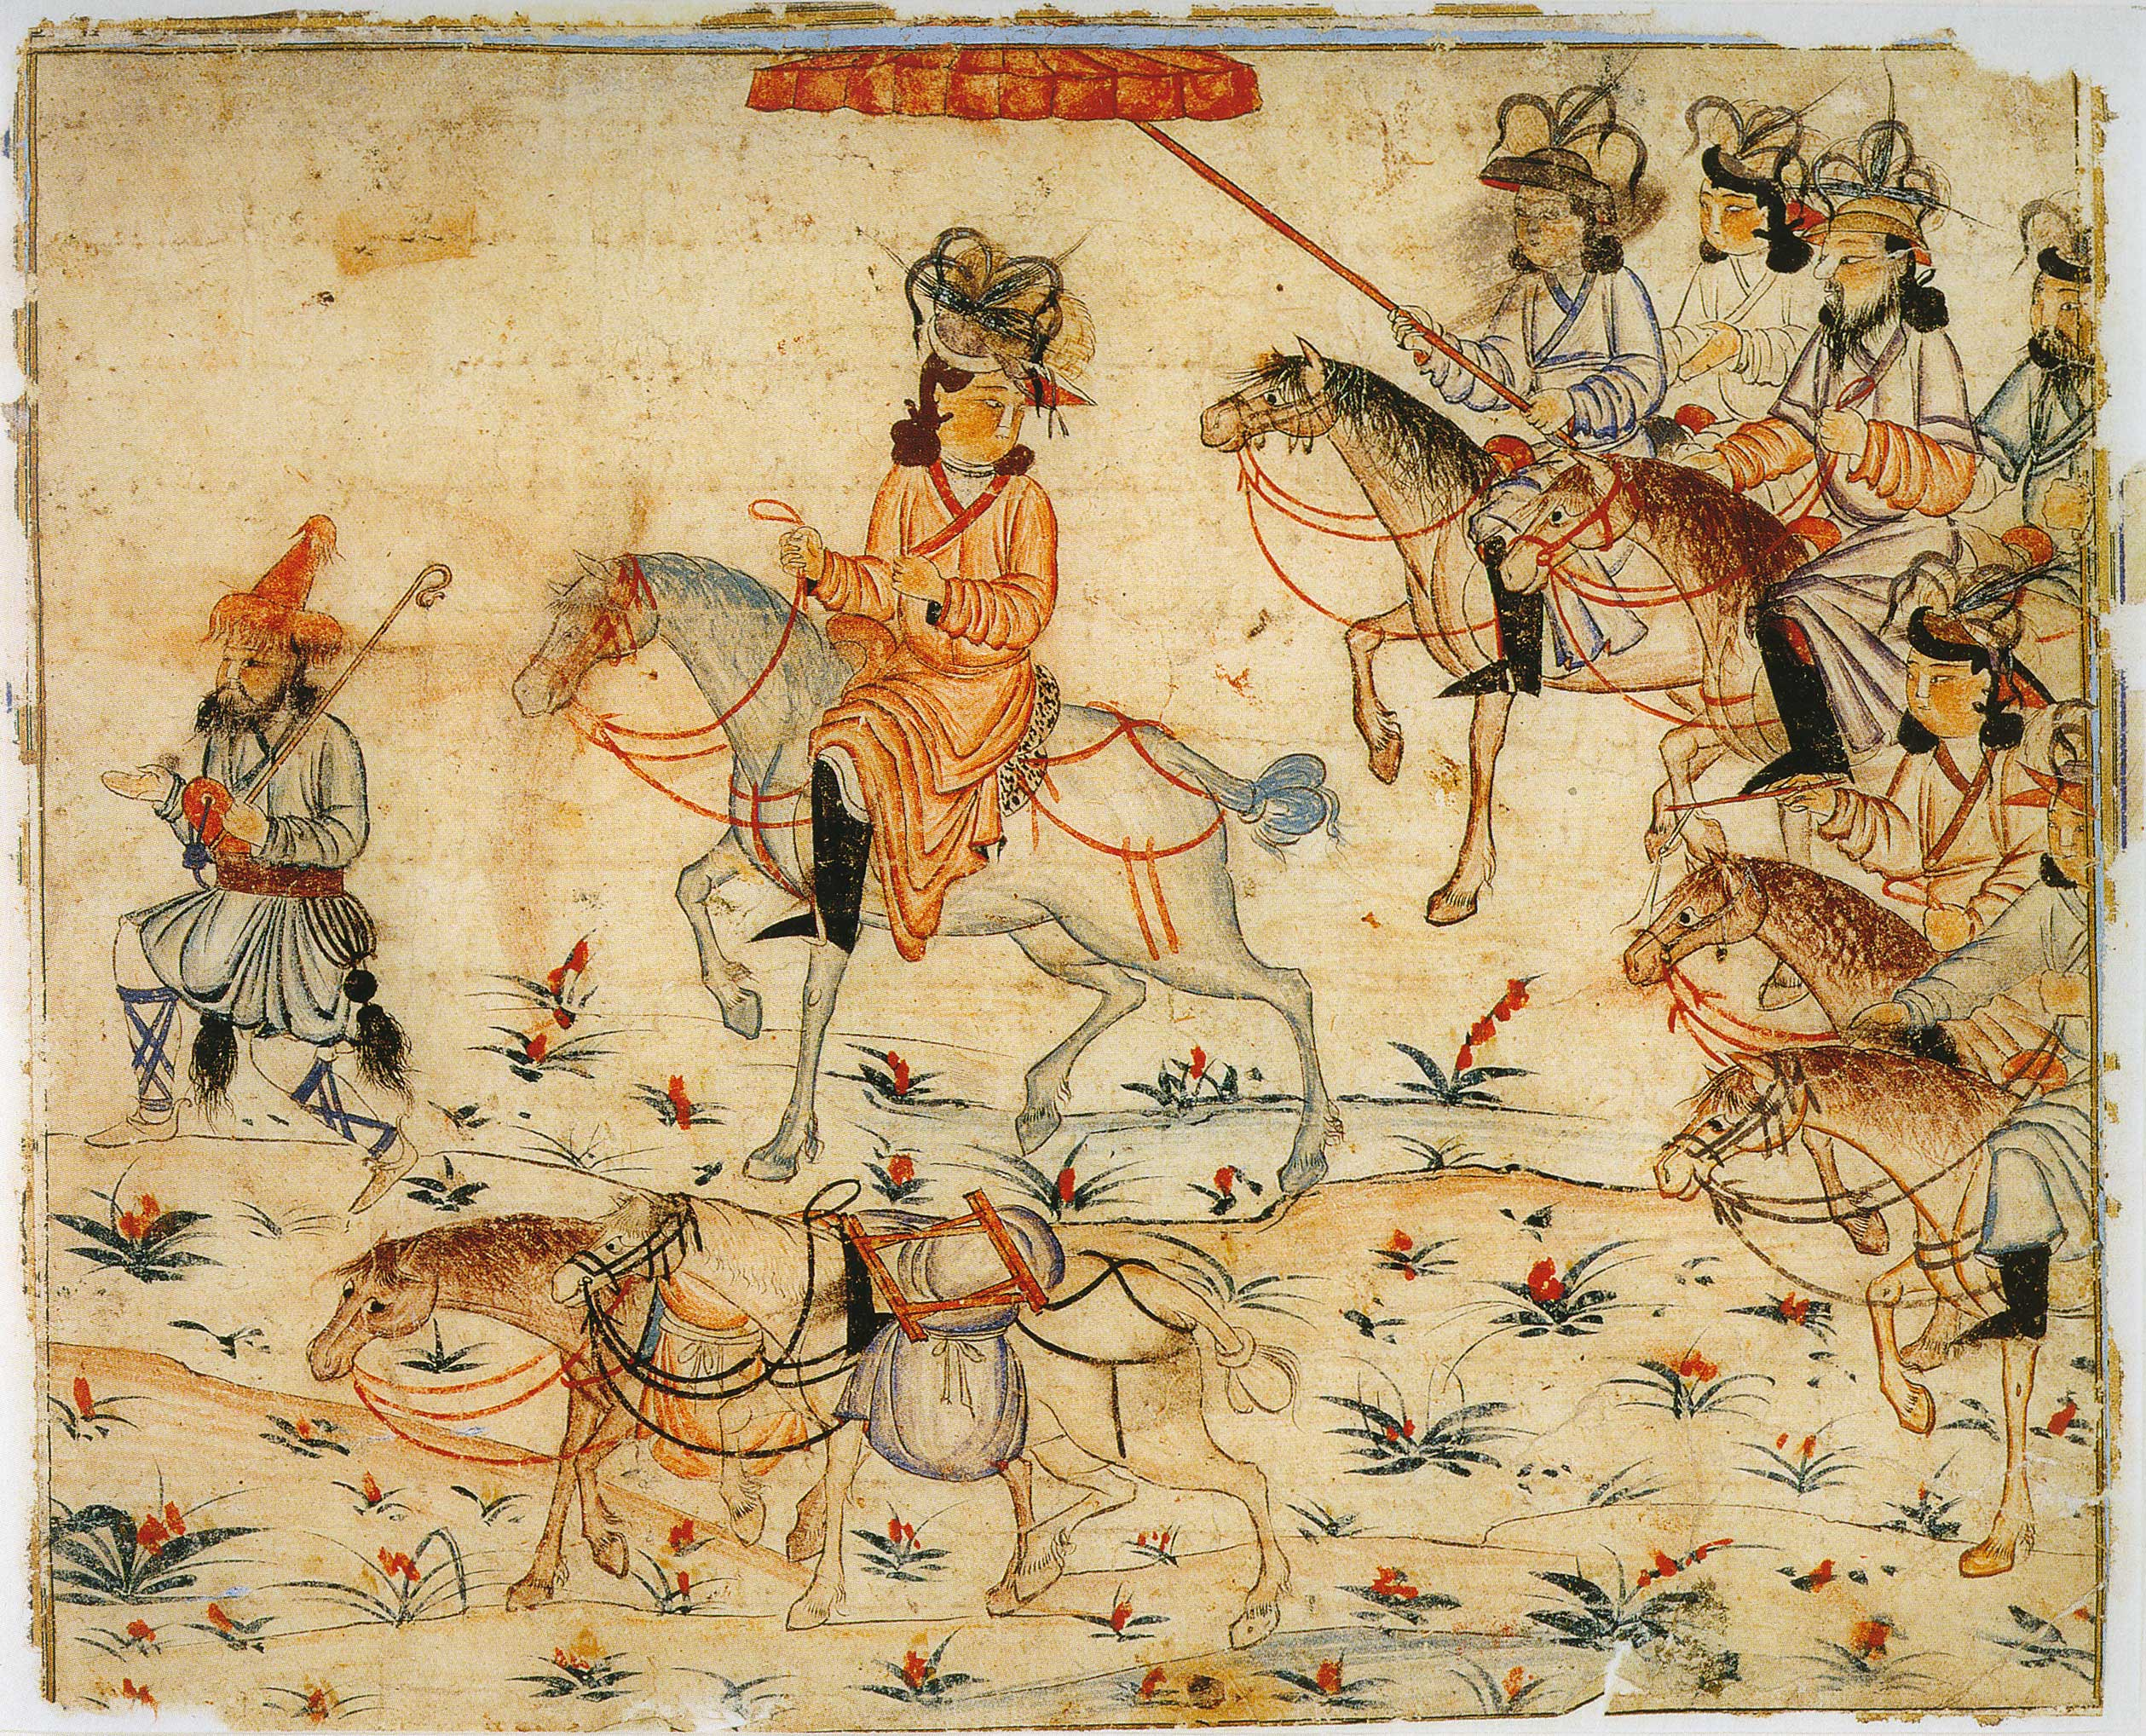 how did mongol expansion and islam effect each other How did empire building and imperial rule effect the spread of each of judaism christianity and islam other information islam believes jesus to be a prophet.